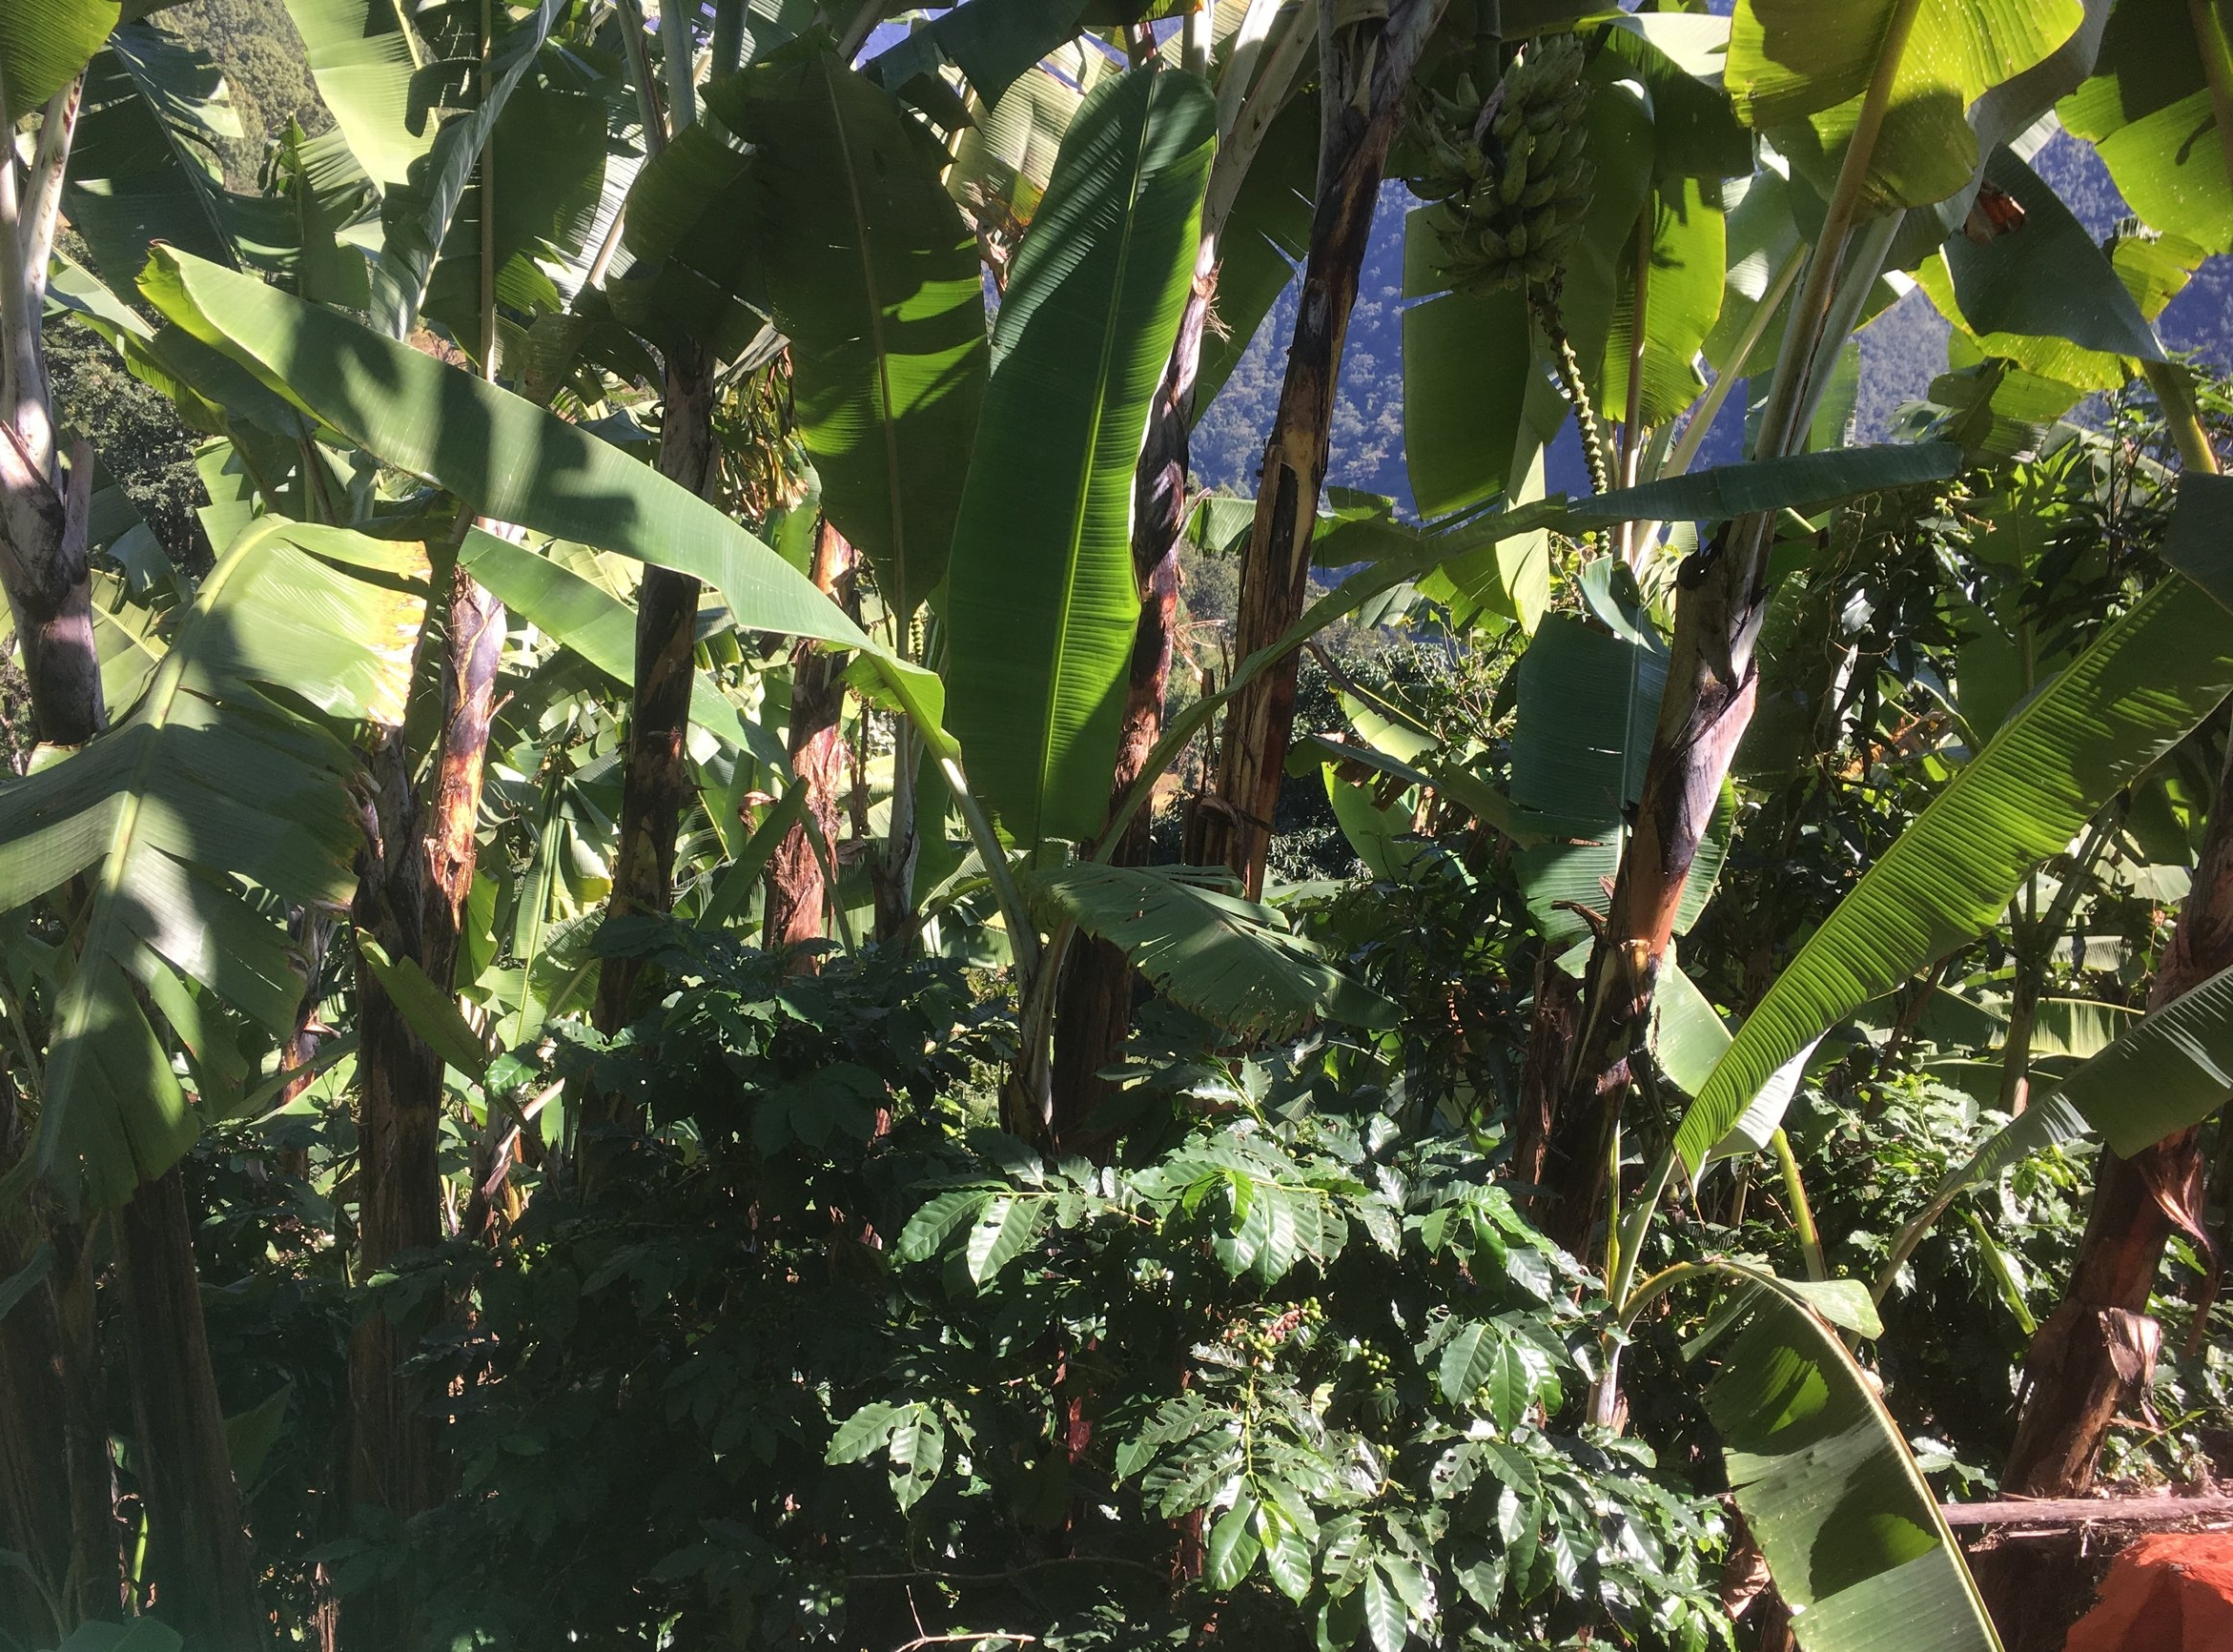 Farmers in Deusa learn to 'inter-crop' their coffee trees with other fruit and nut bearing trees. This provides the shade coffee trees need and also prevents unsustainable mono-cultures from developing. Here you can see coffee growing in the shade of large banana trees.